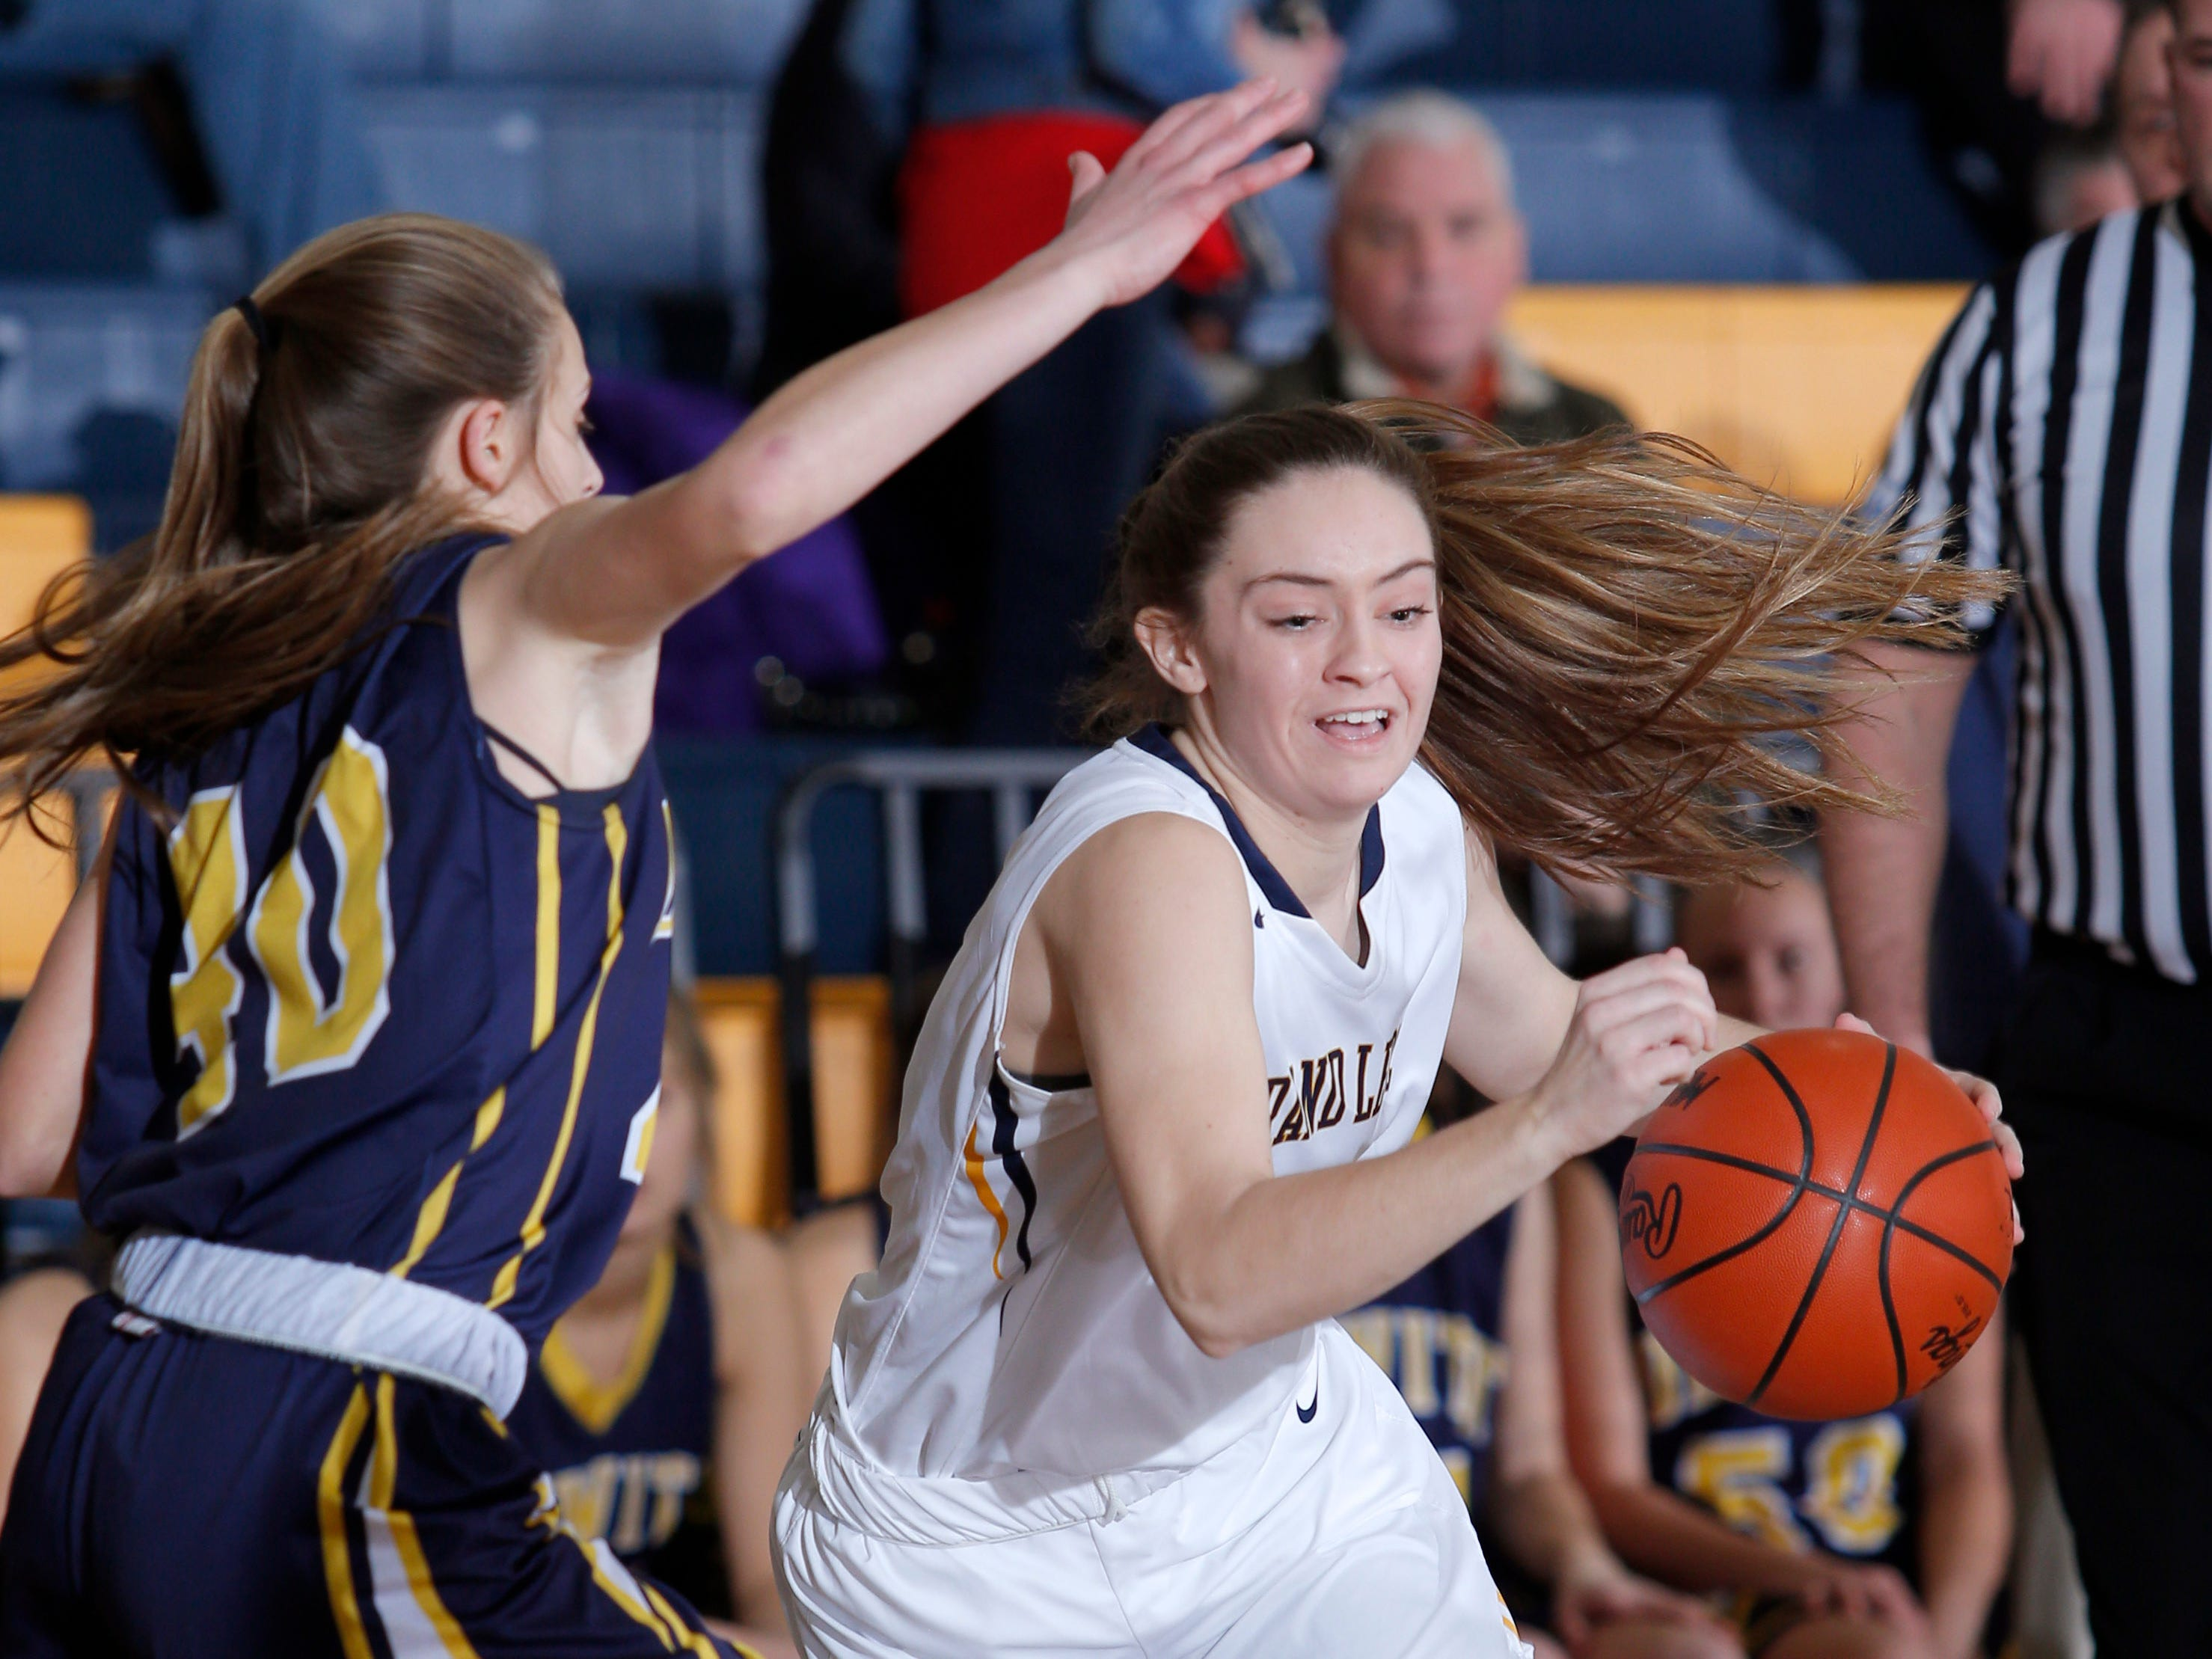 Grand Ledge's Makenzie Todd, right, drives DeWitt's Isabelle Gilmore, Tuesday, Jan. 15, 2019, in Grand Ledge, Mich.